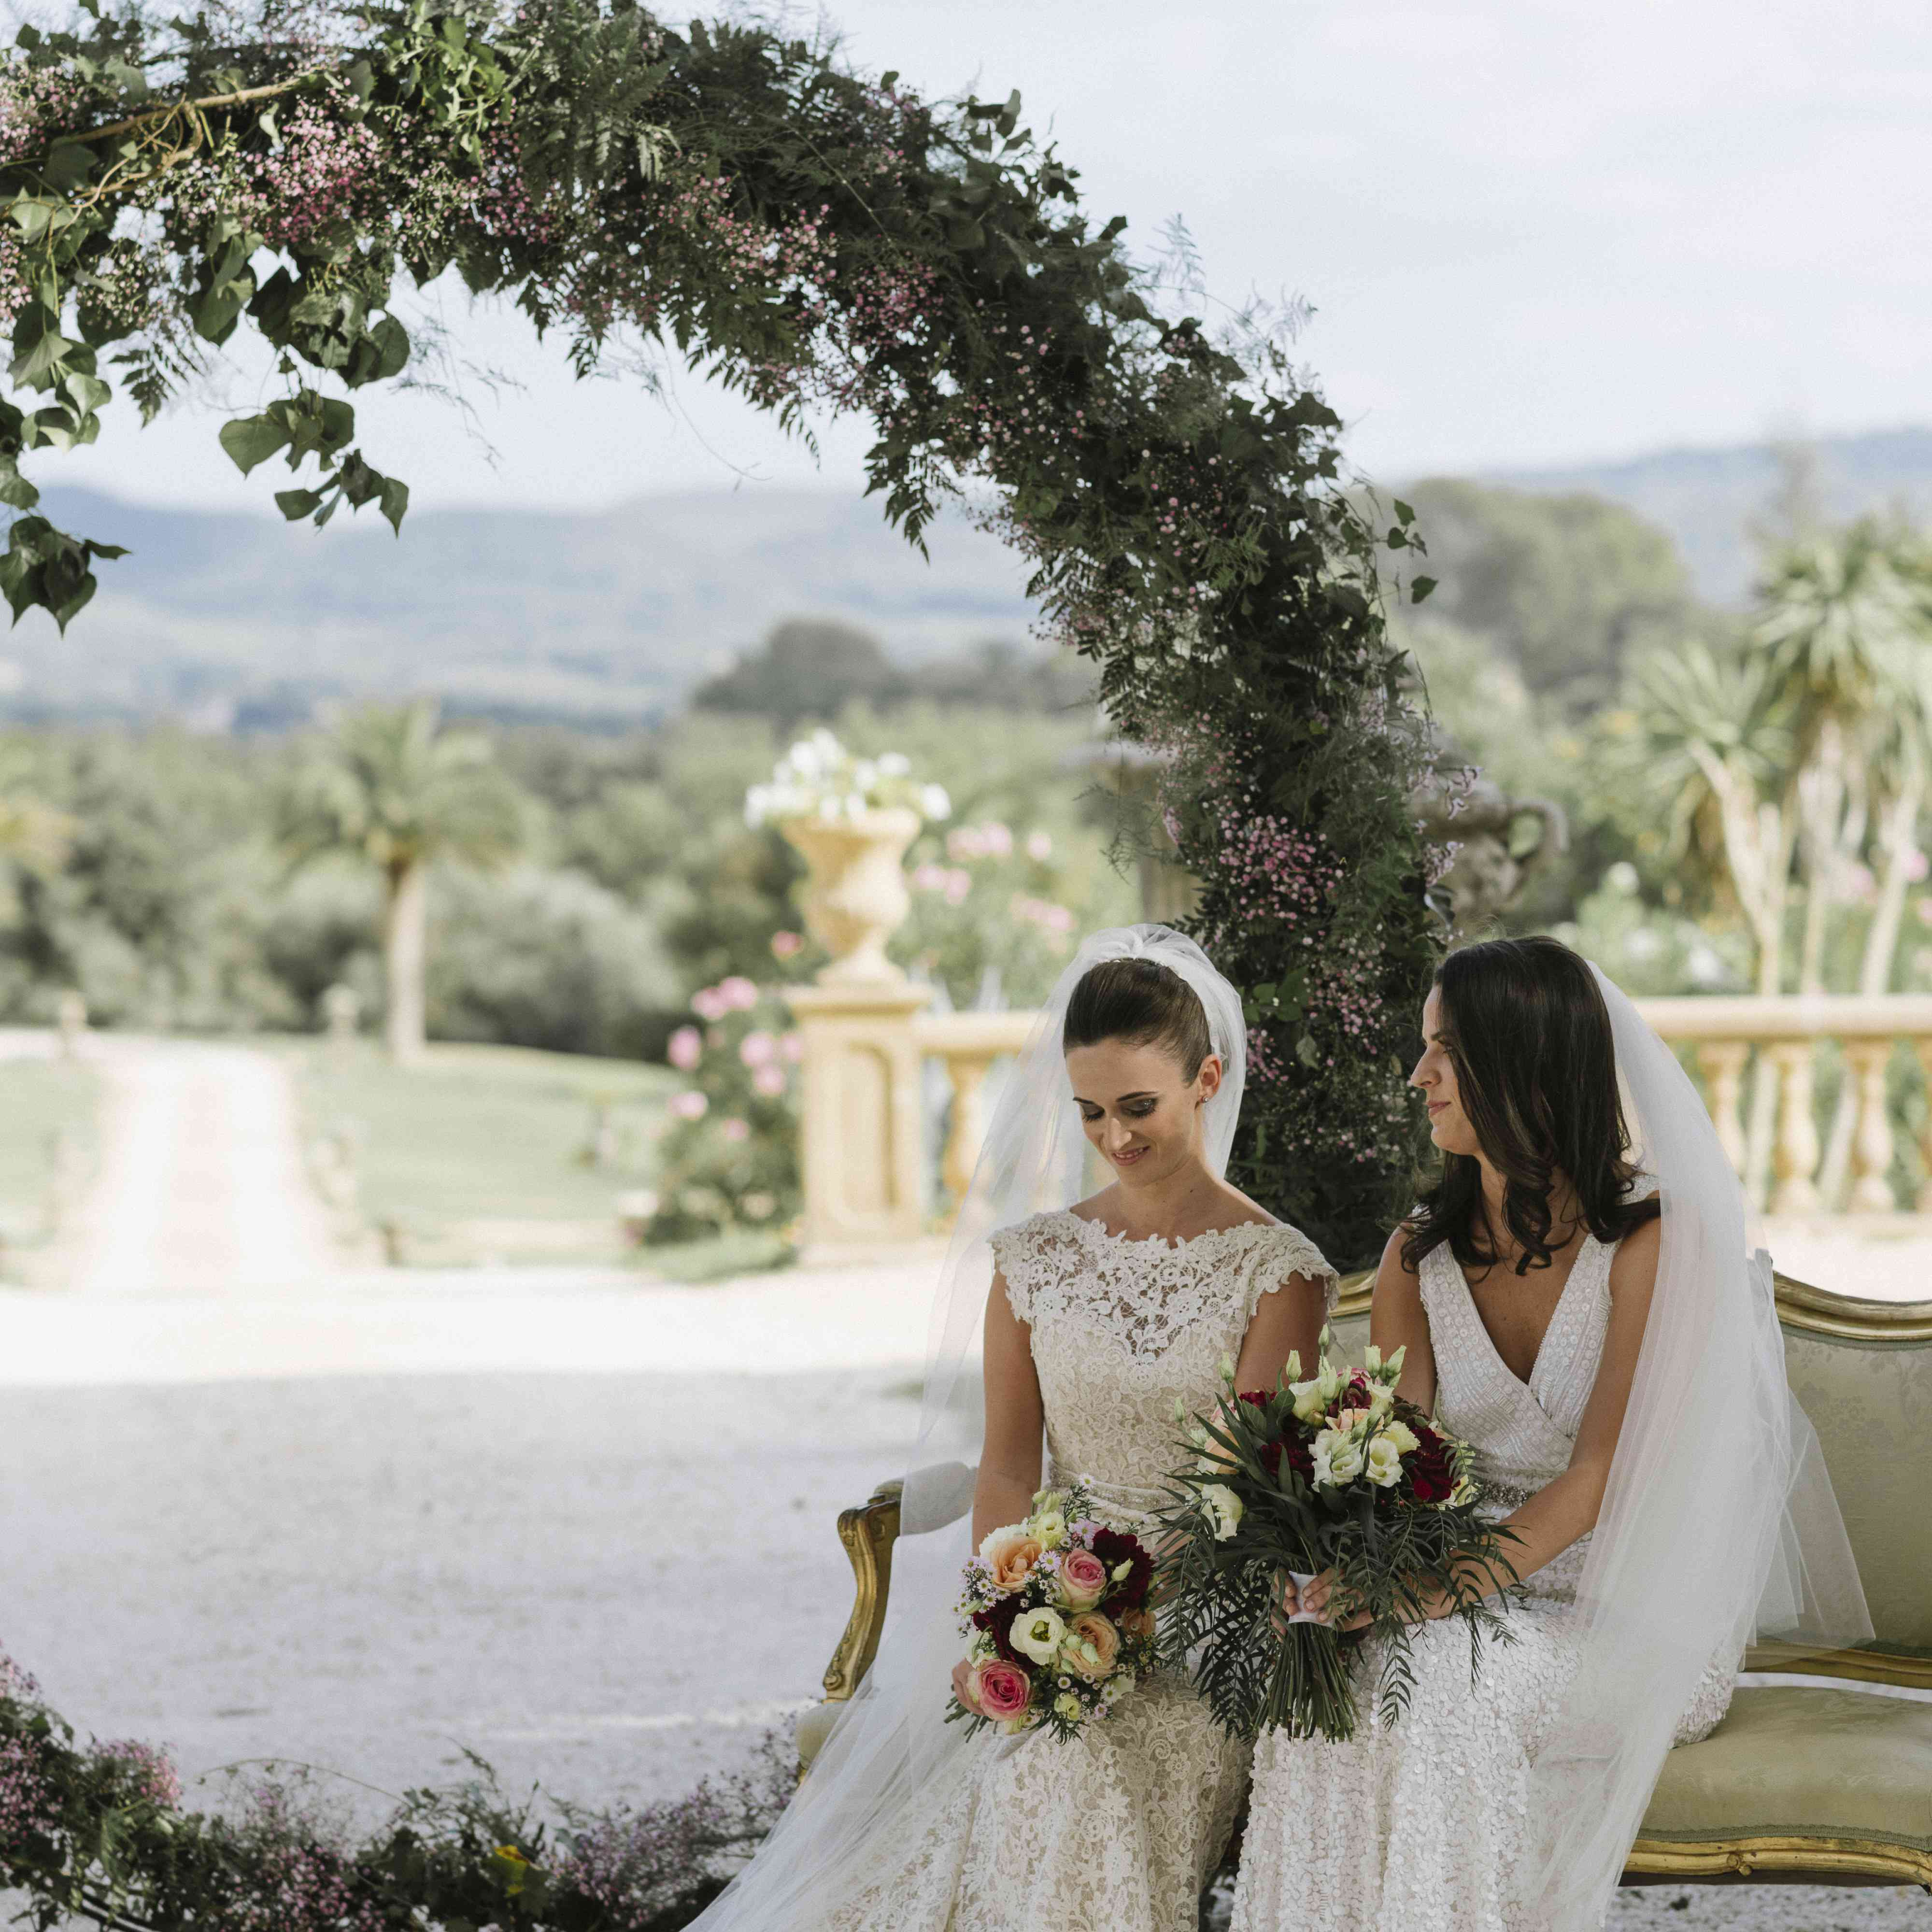 <p>brides sitting on couch outdoor wedding ceremony</p><br><br>